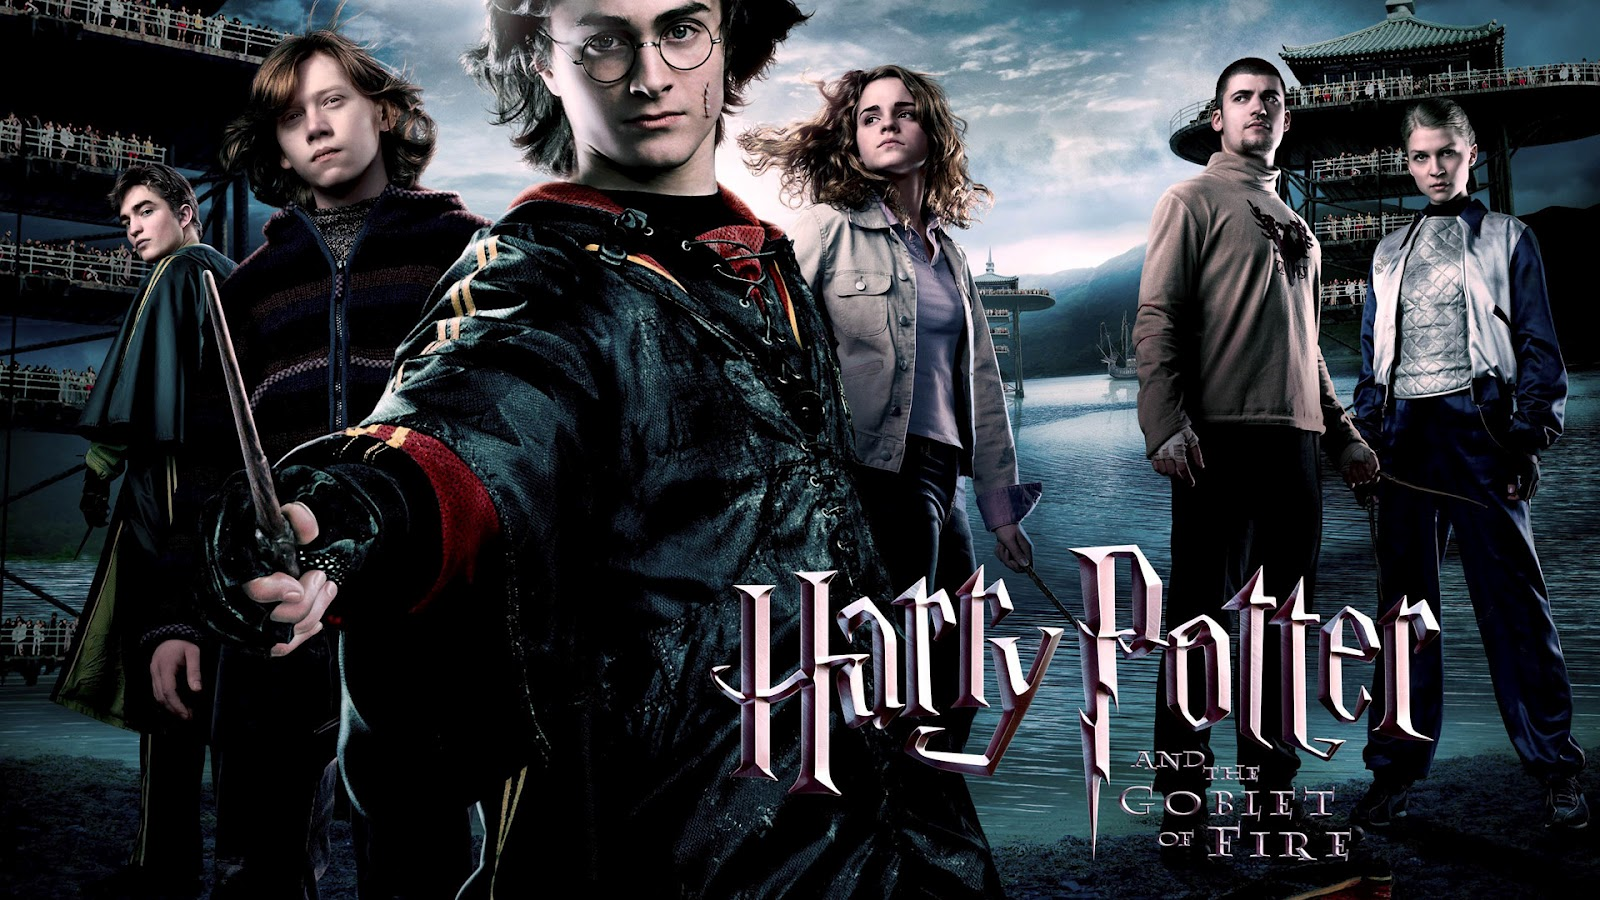 http://4.bp.blogspot.com/-prNiza5aktc/UBHuShwYNUI/AAAAAAAAClE/6-WyWshJtCw/s1600/cast-harry-potter-4-hp42-goblet-of-fire-1920x1080.jpg